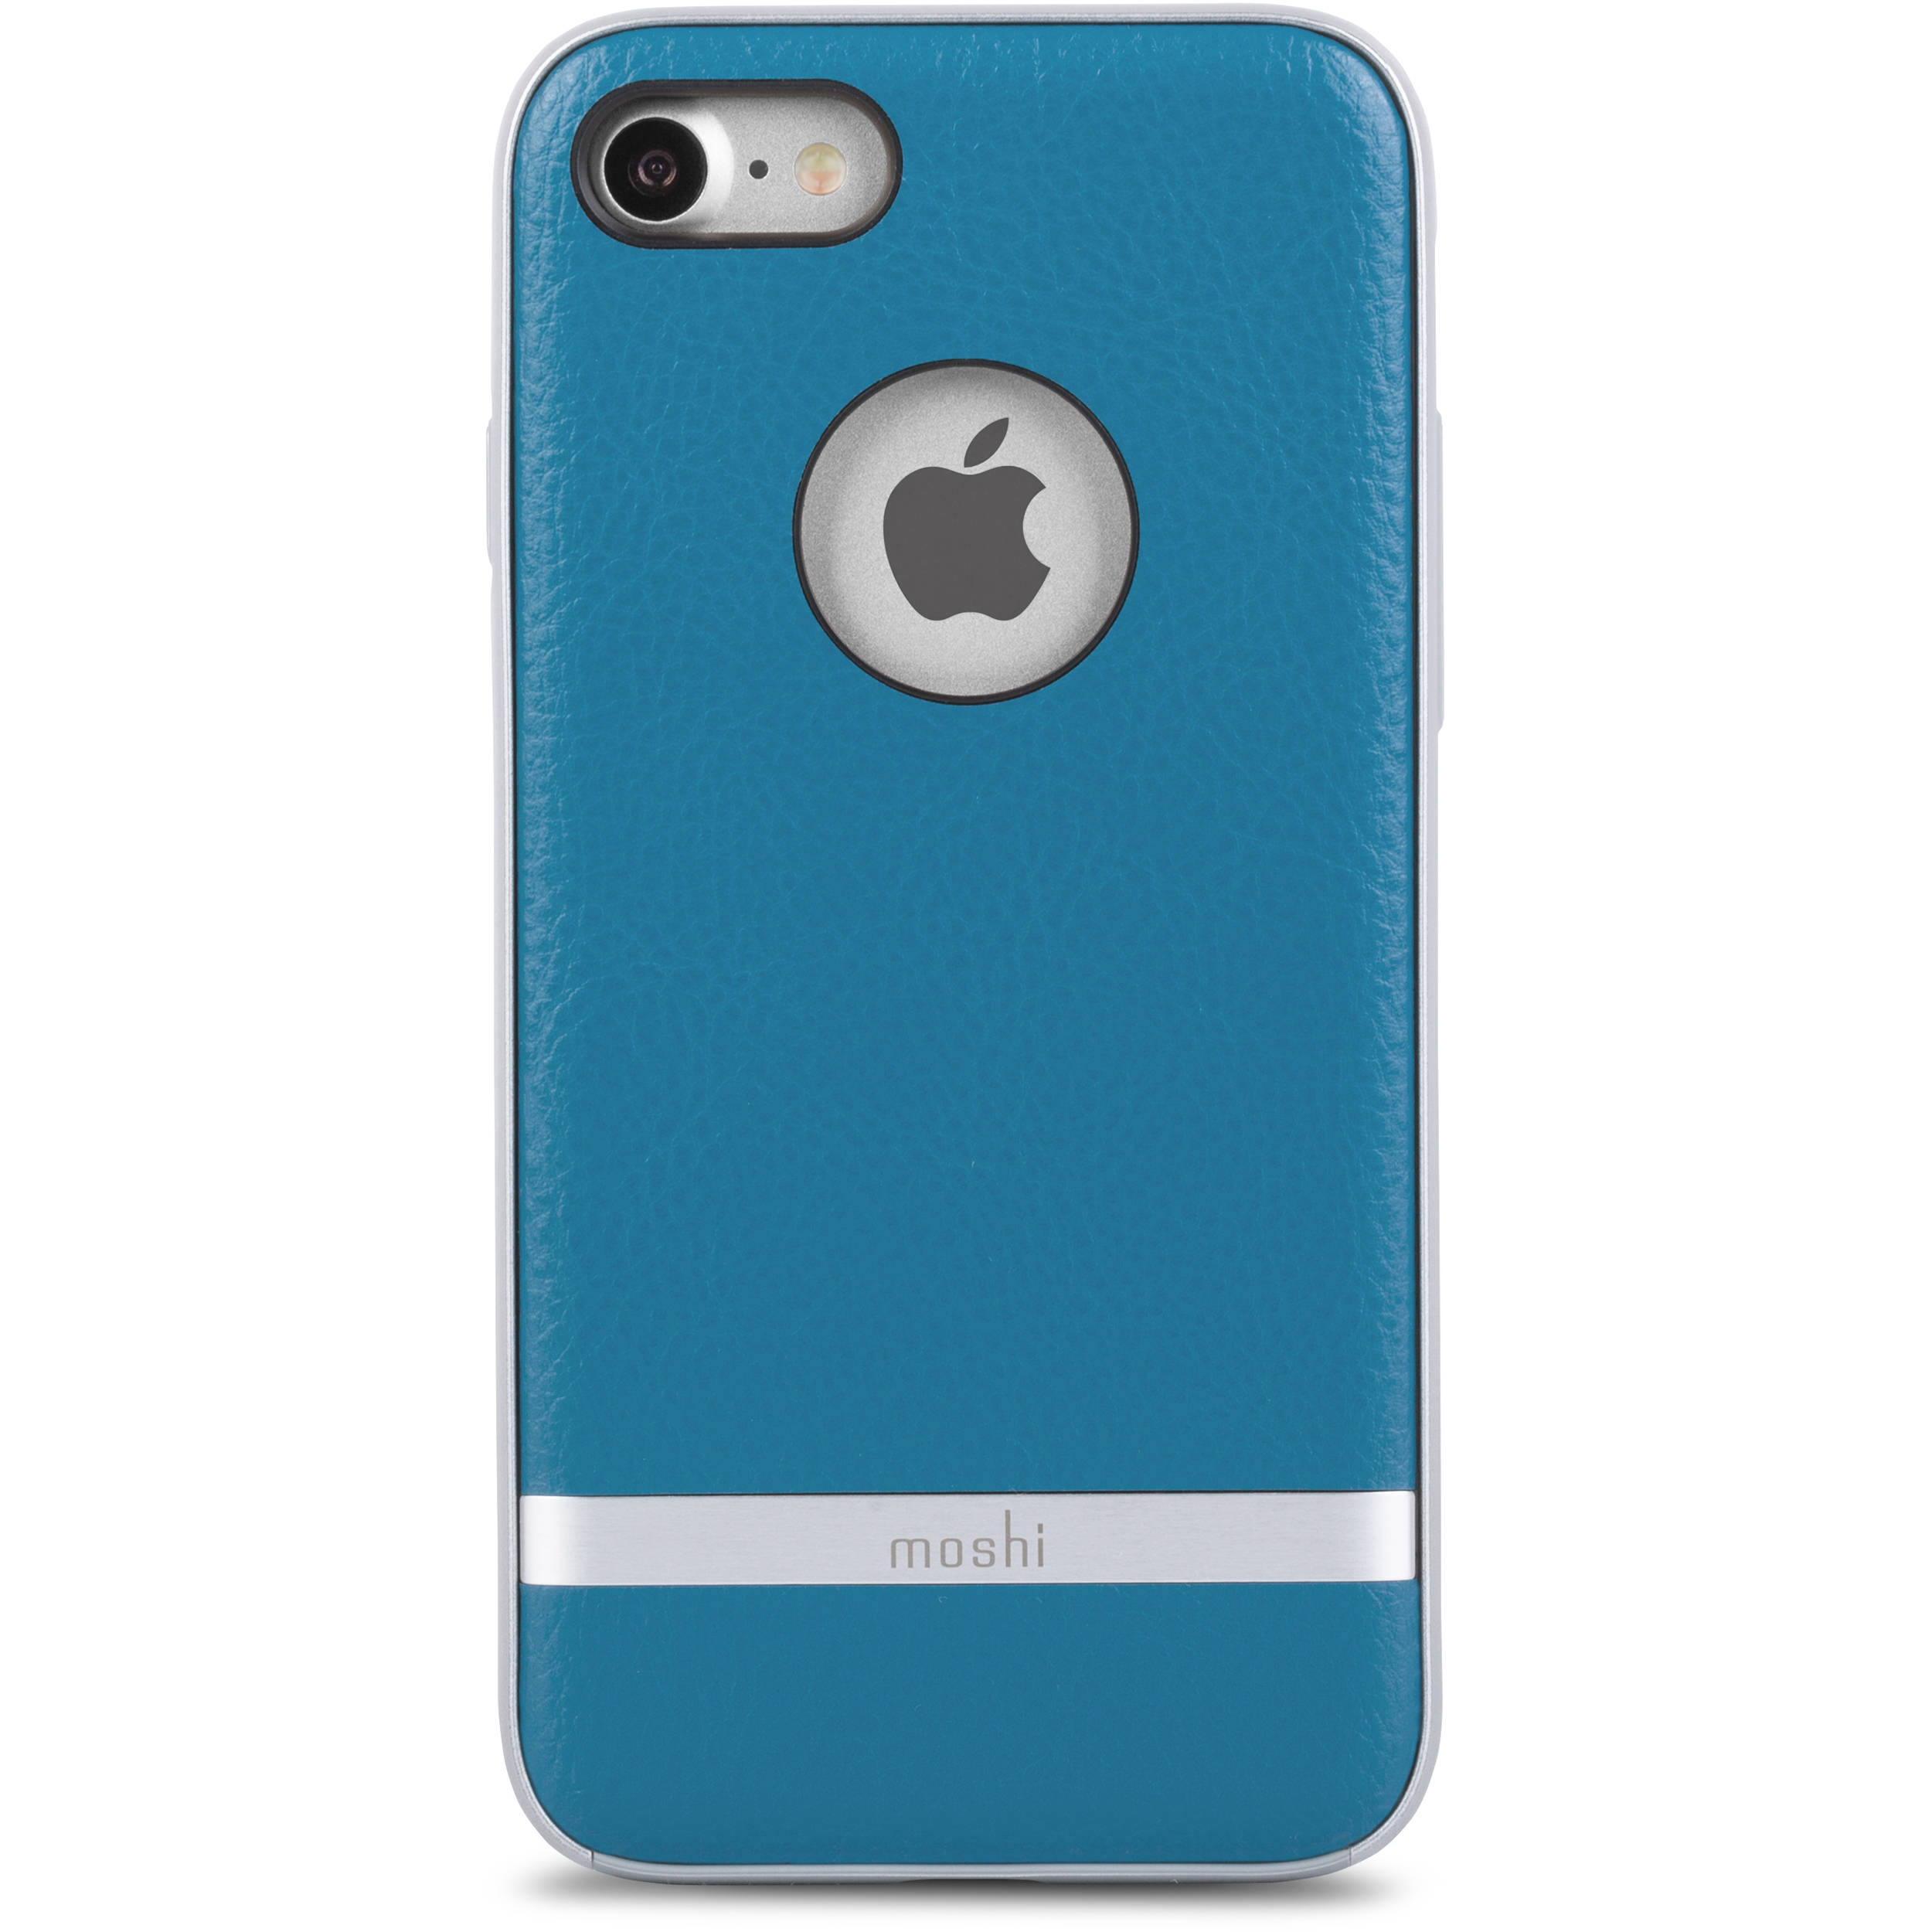 moshi iphone case moshi napa for iphone 7 blue 99mo088512 b amp h photo 7367